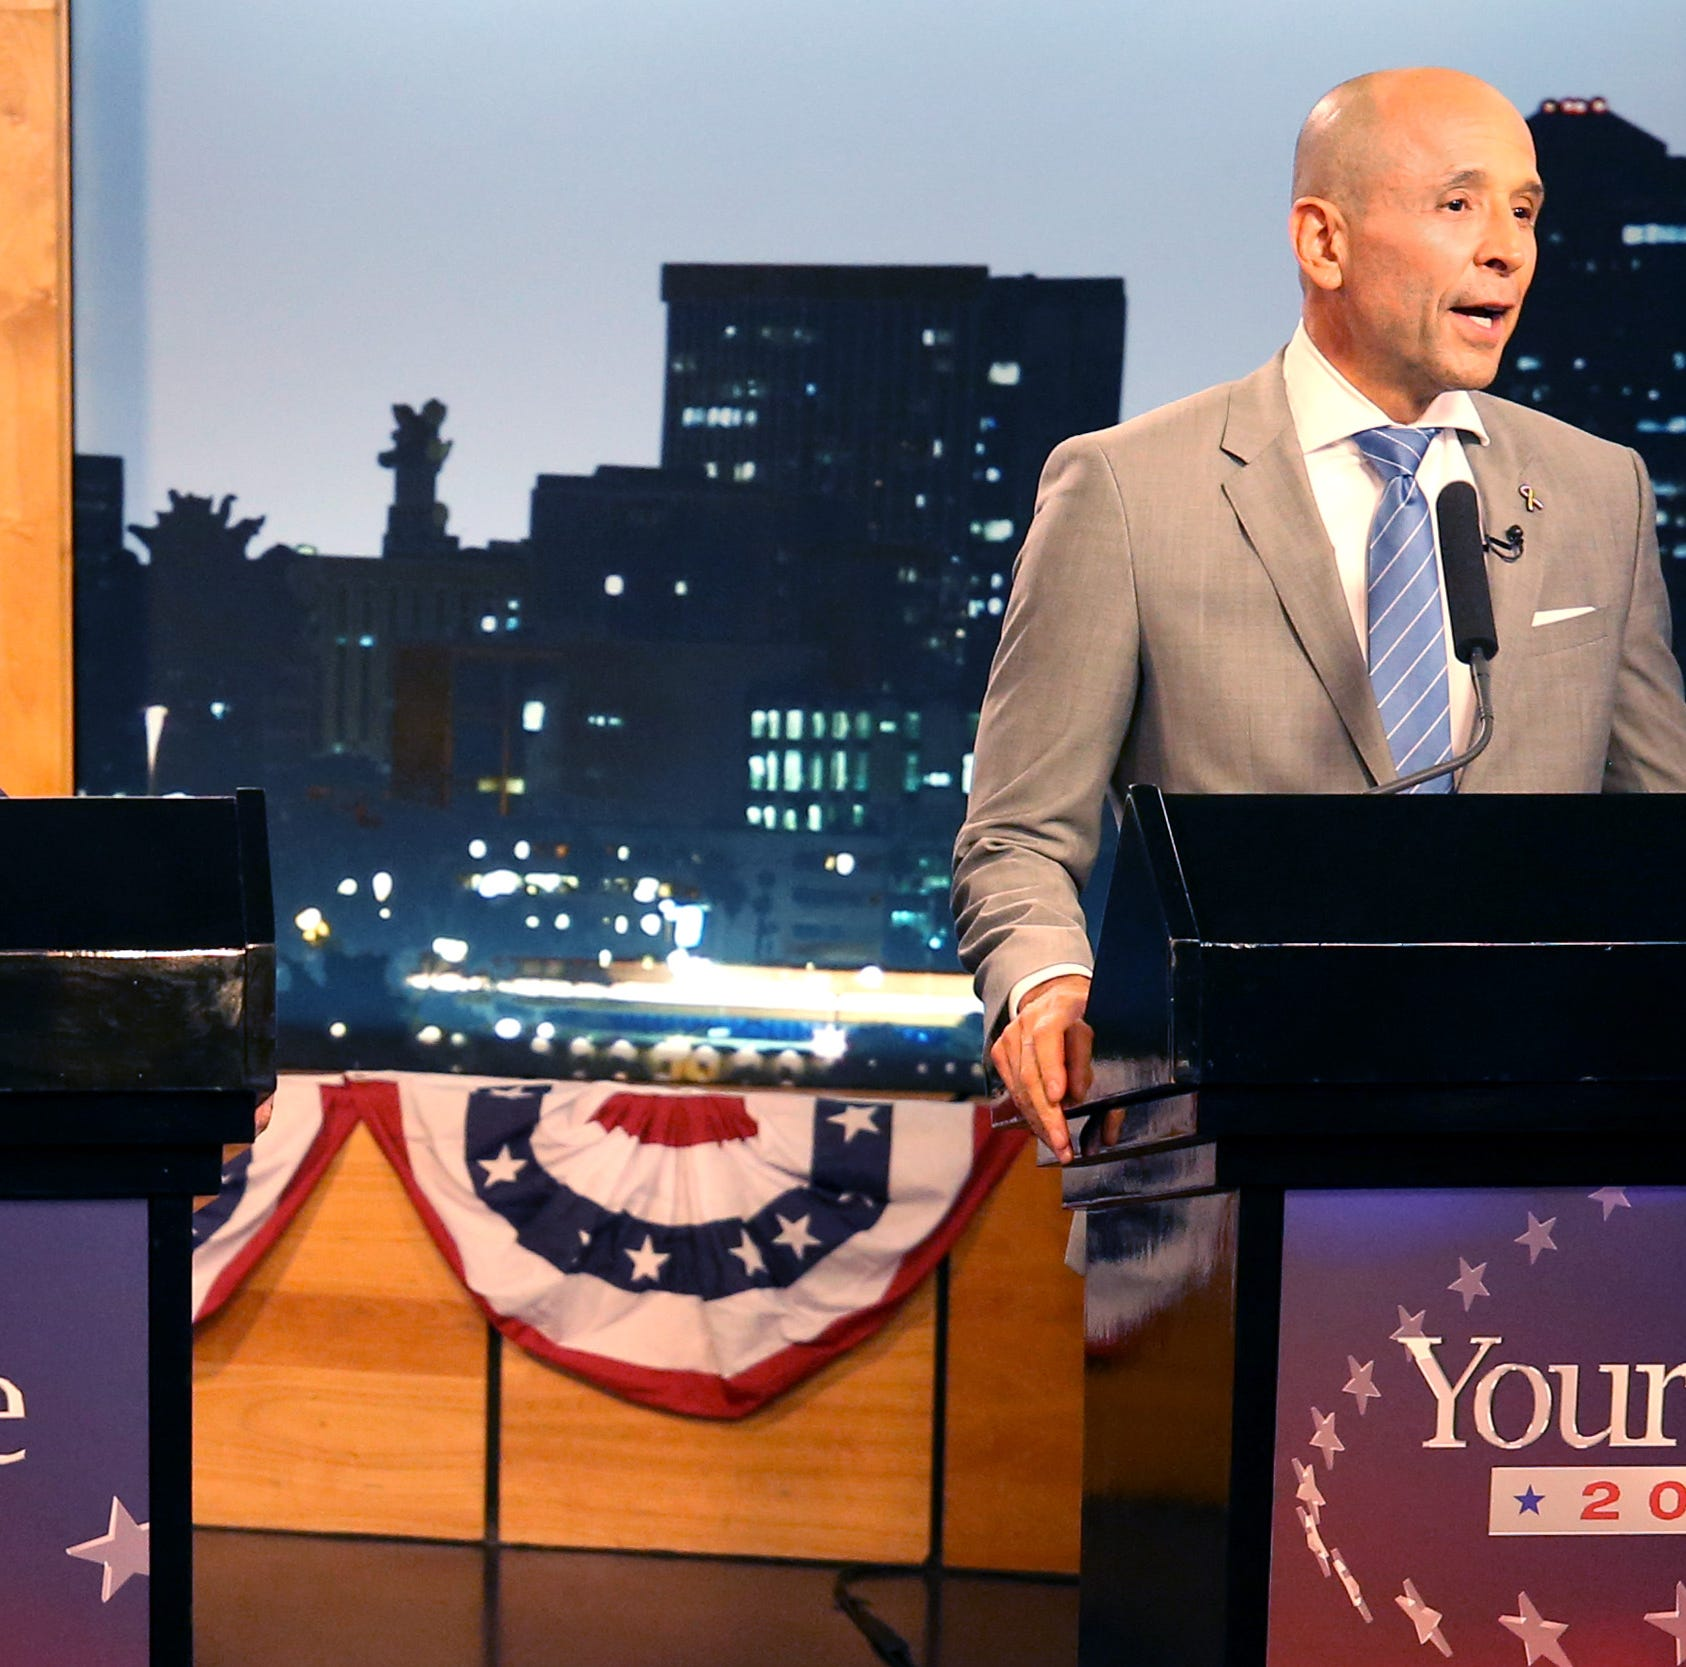 Gov. Doug Ducey, David Garcia battle on issues of education and immigration in second debate